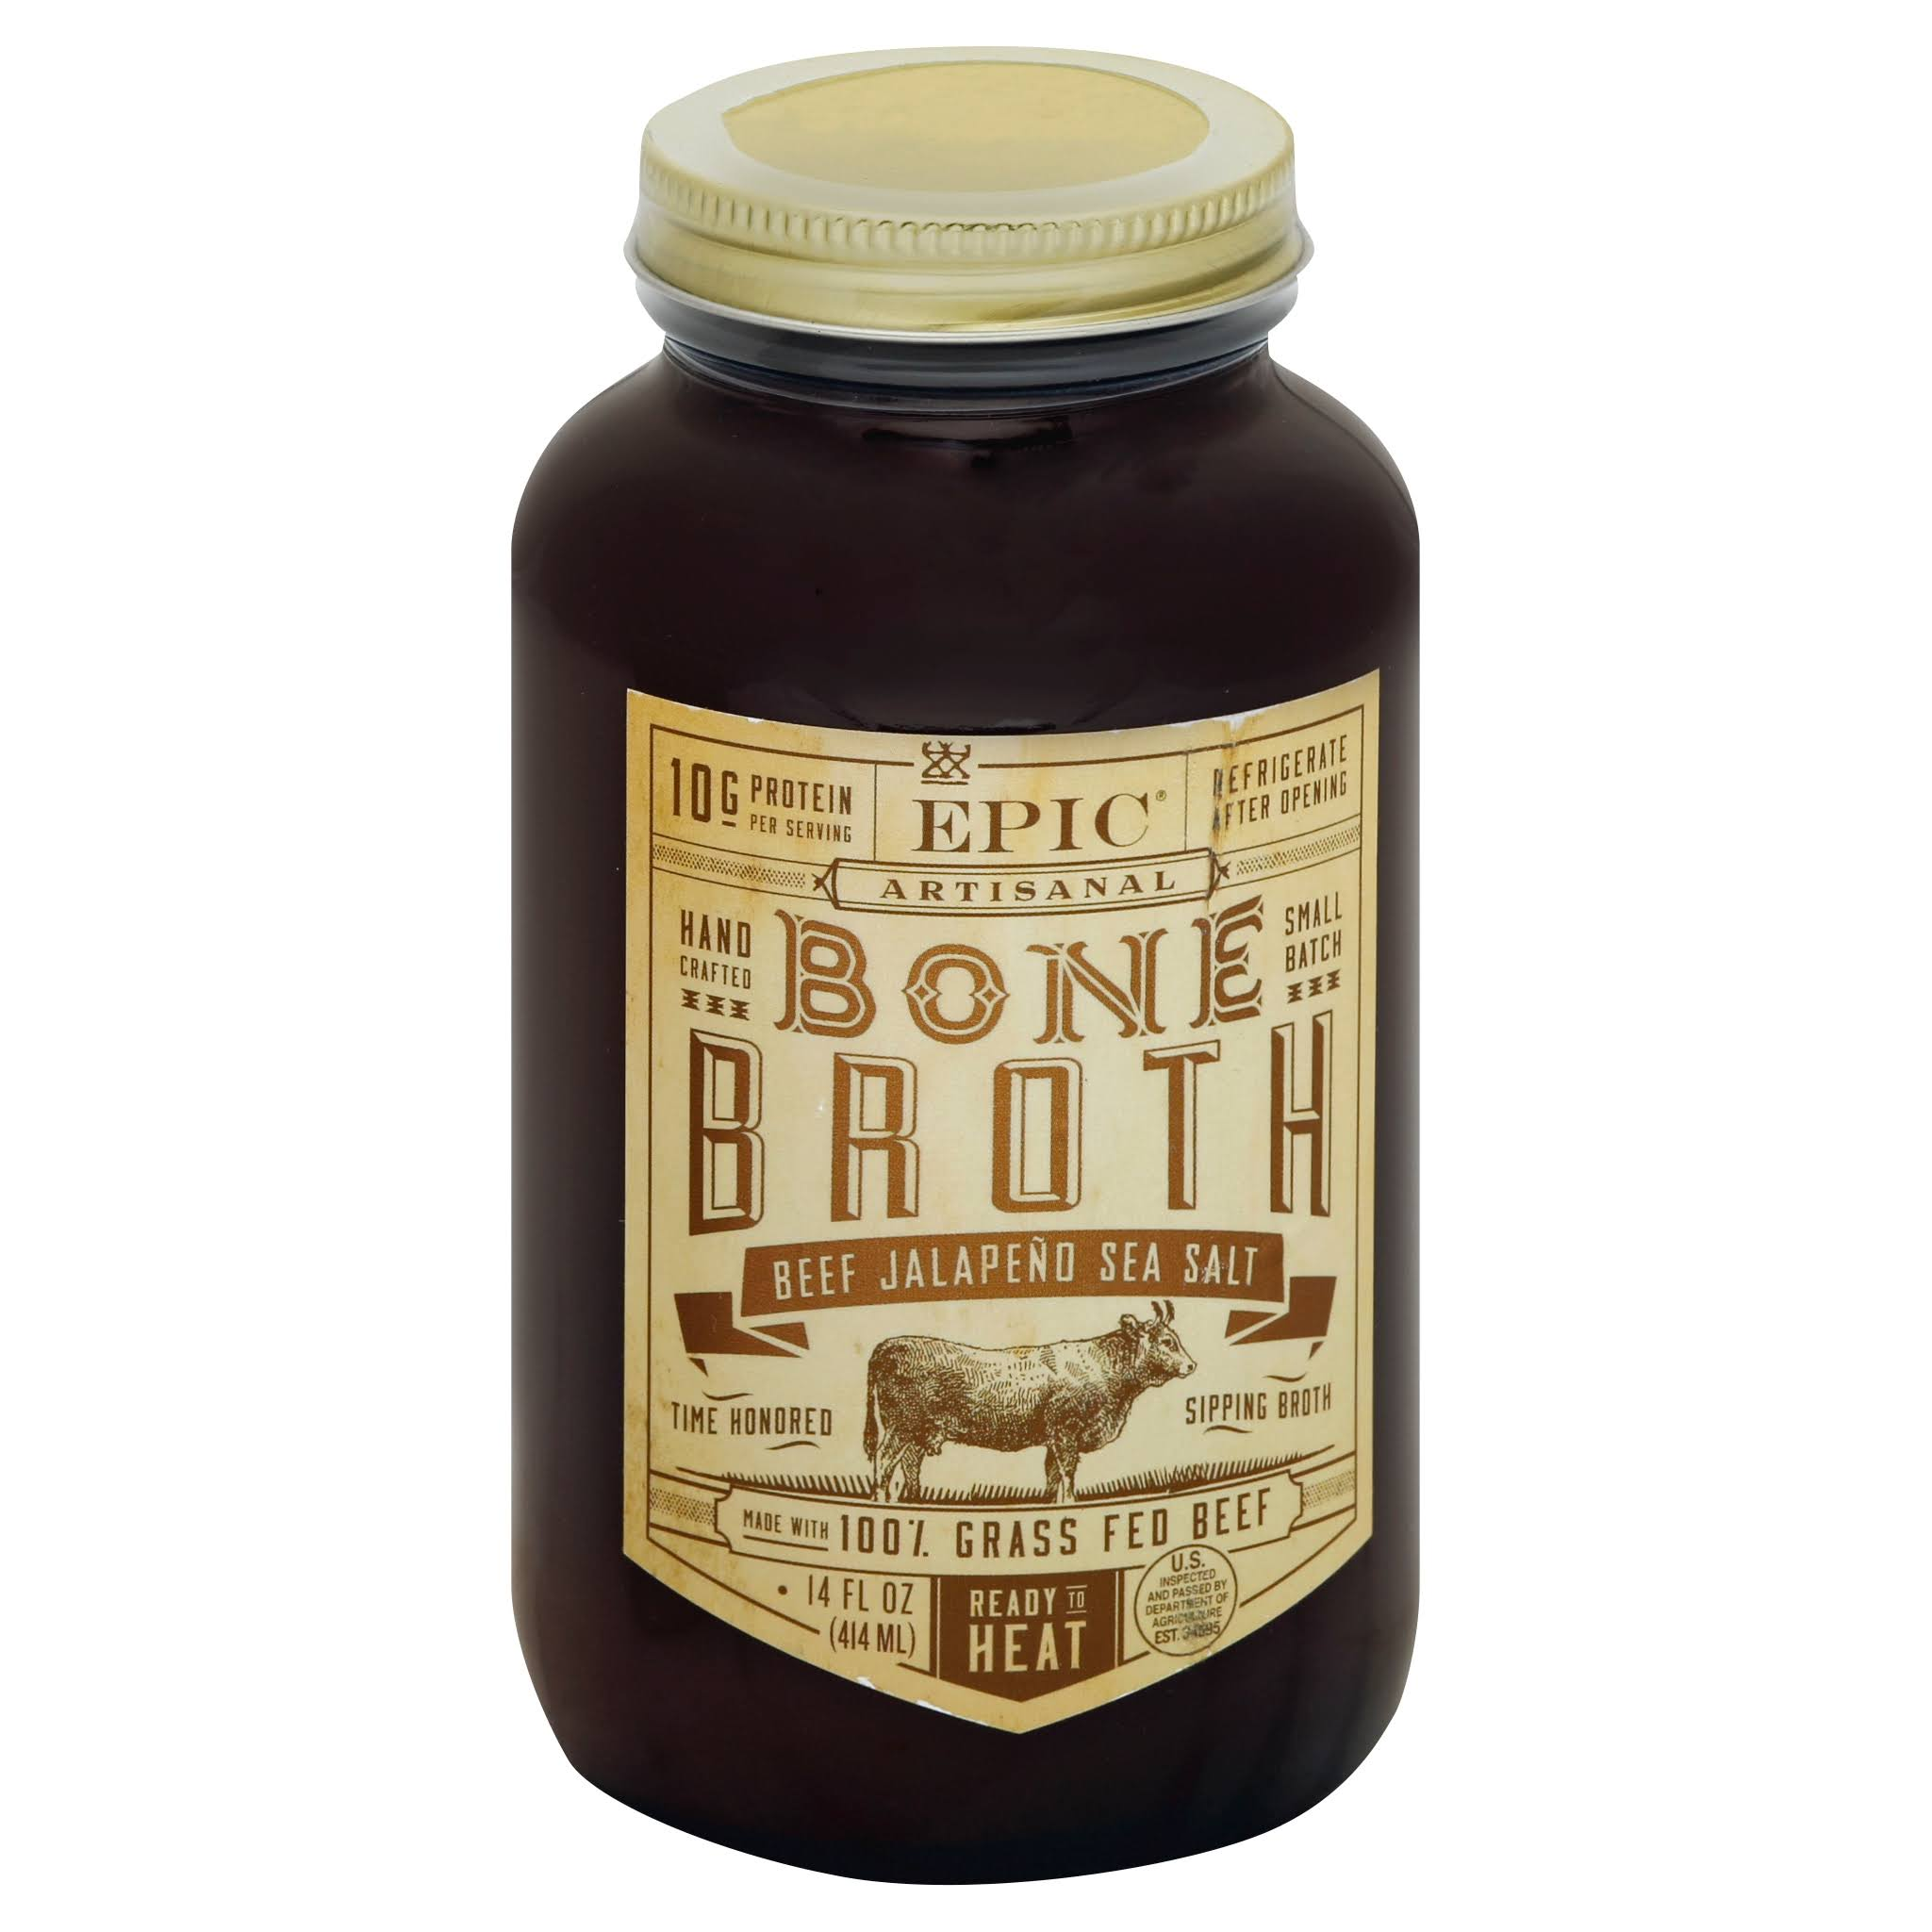 Epic Artisanal Bone Broth - Beef Jalapeno Sea Salt, 14oz